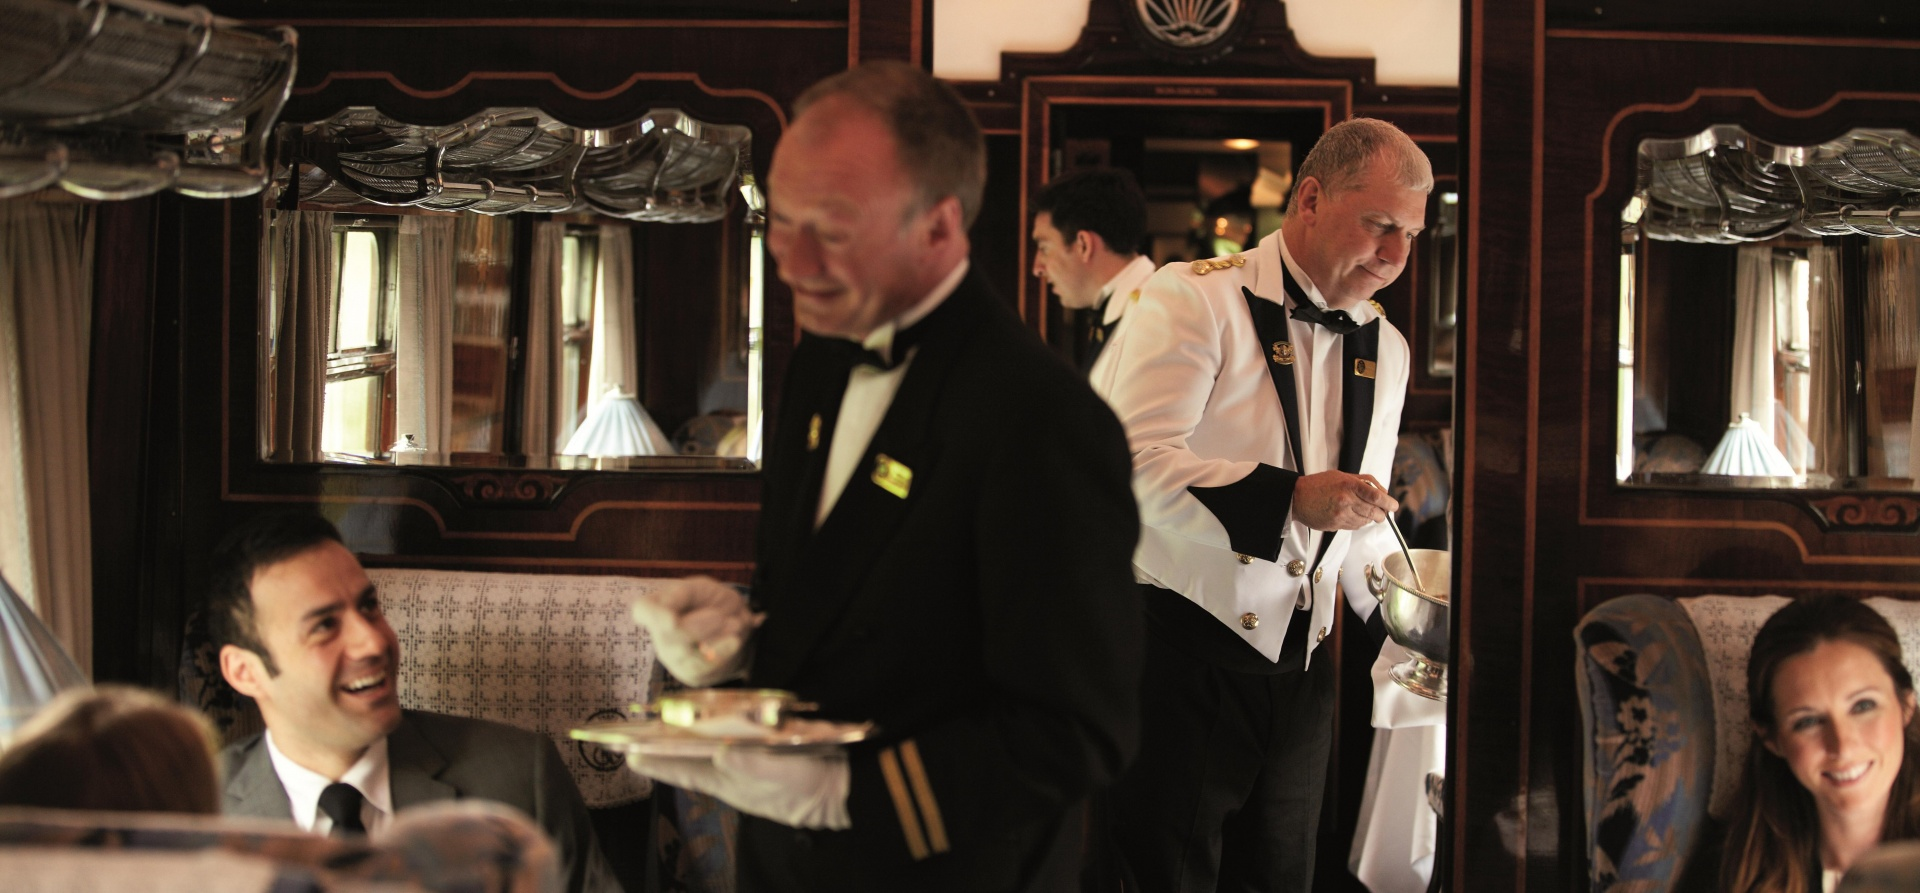 Day Excursions Aboard The Belmond British Pullman-8